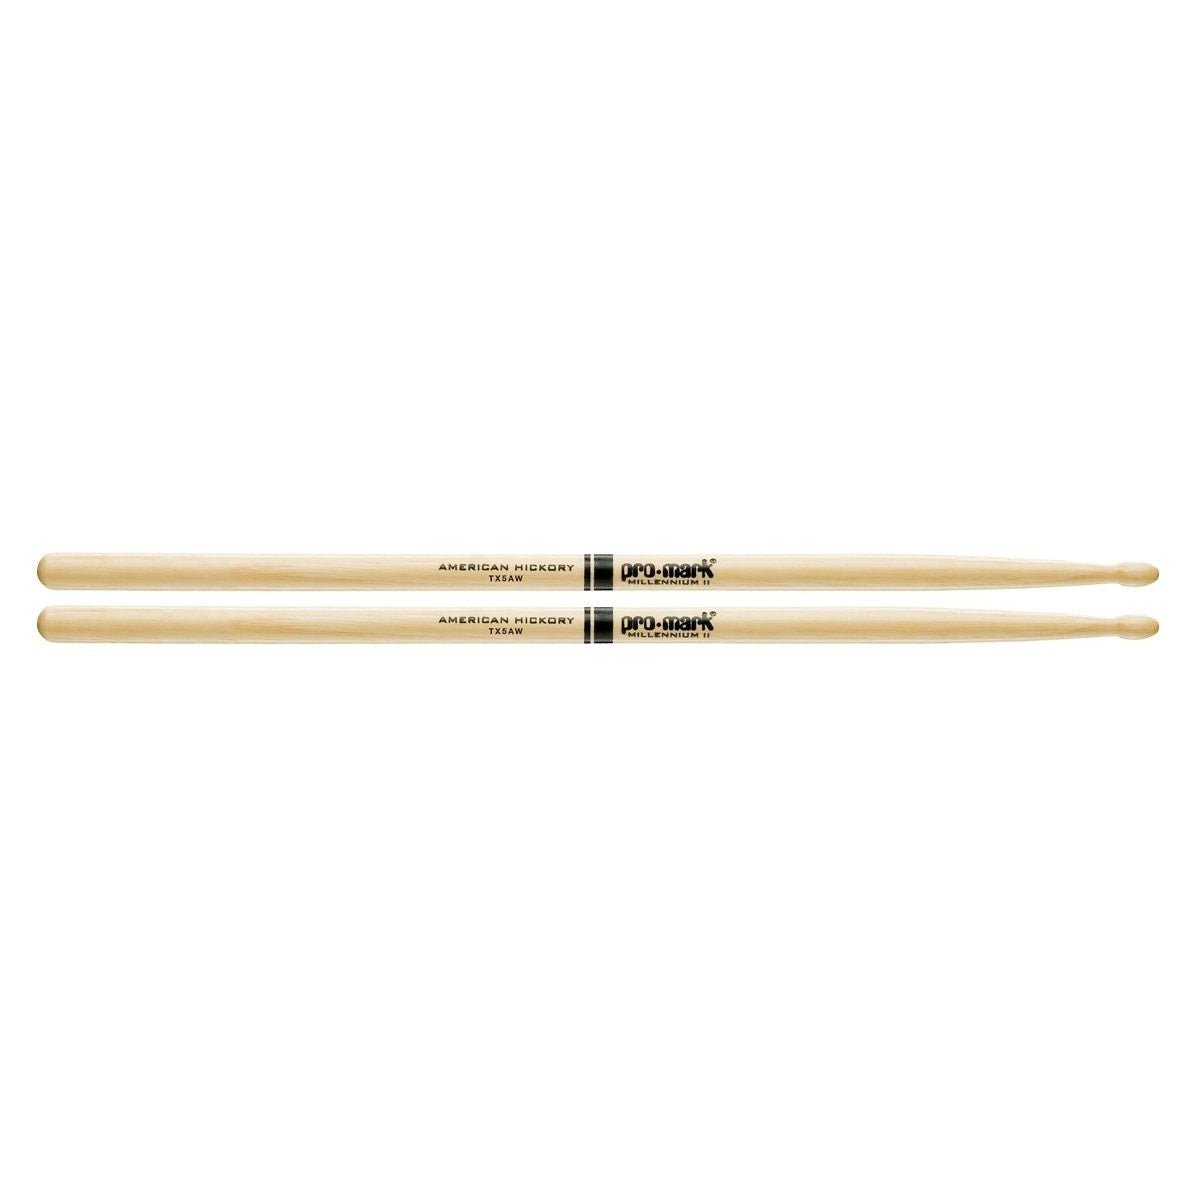 ProMark 5A Drumsticks, Wood Tip, Pair